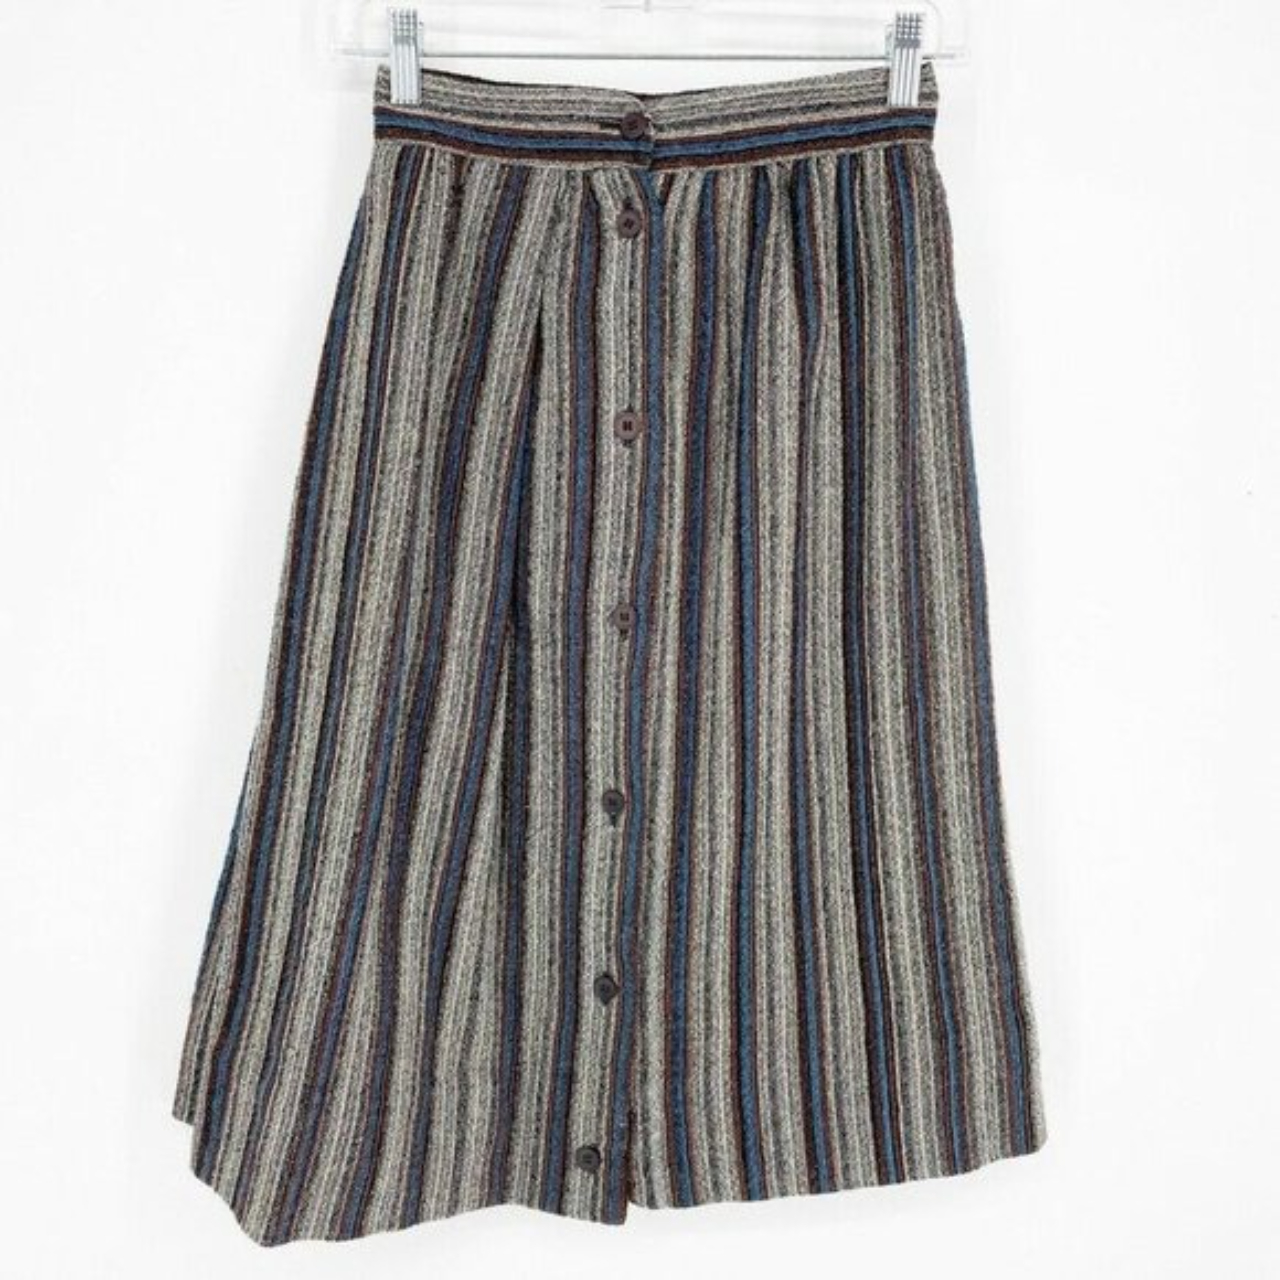 Product Image 1 - Striped Wool Vintage plaid Skirt Approximate